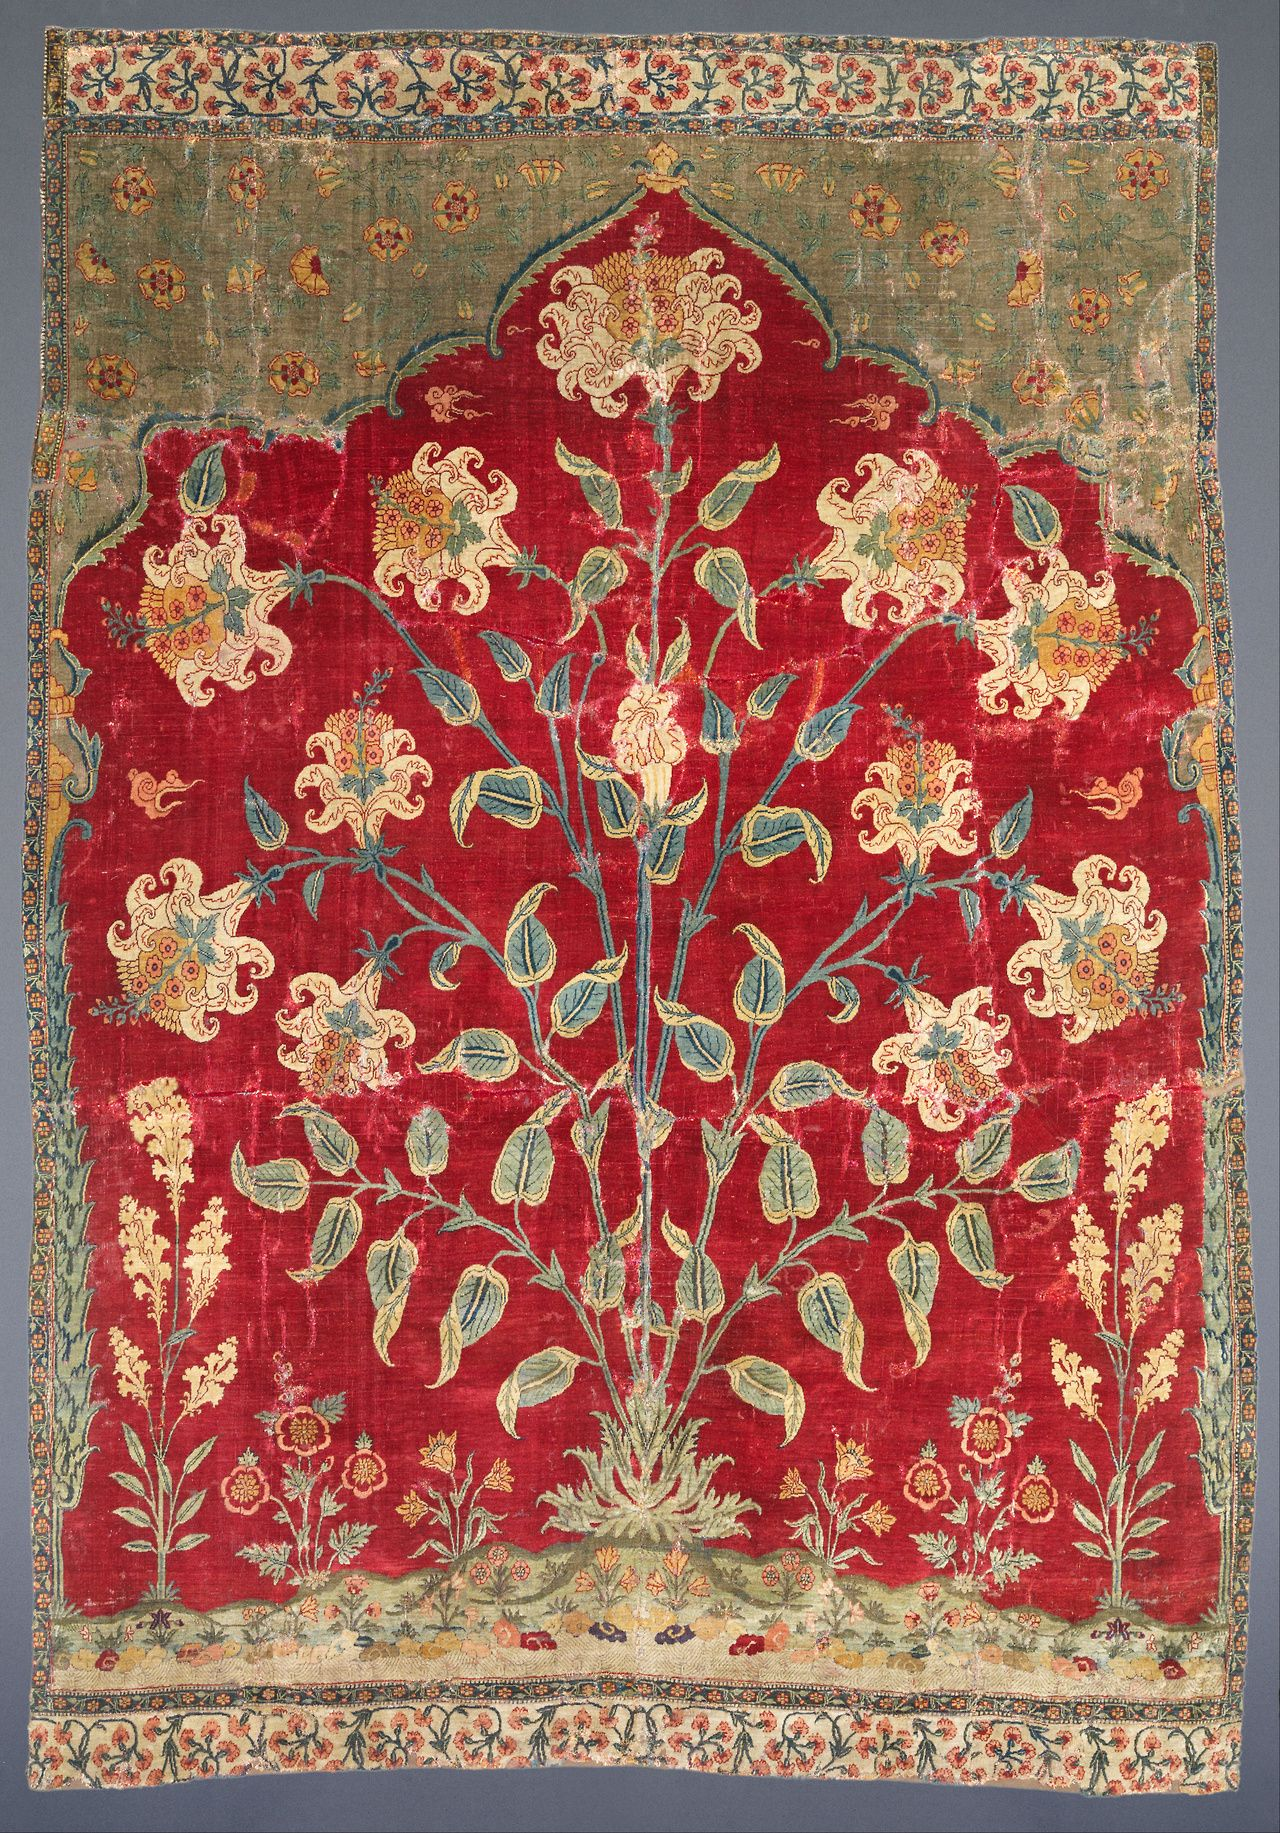 Fragment of a Saf carpet (1600-1650) The Museum of Islamic Art, Qatar